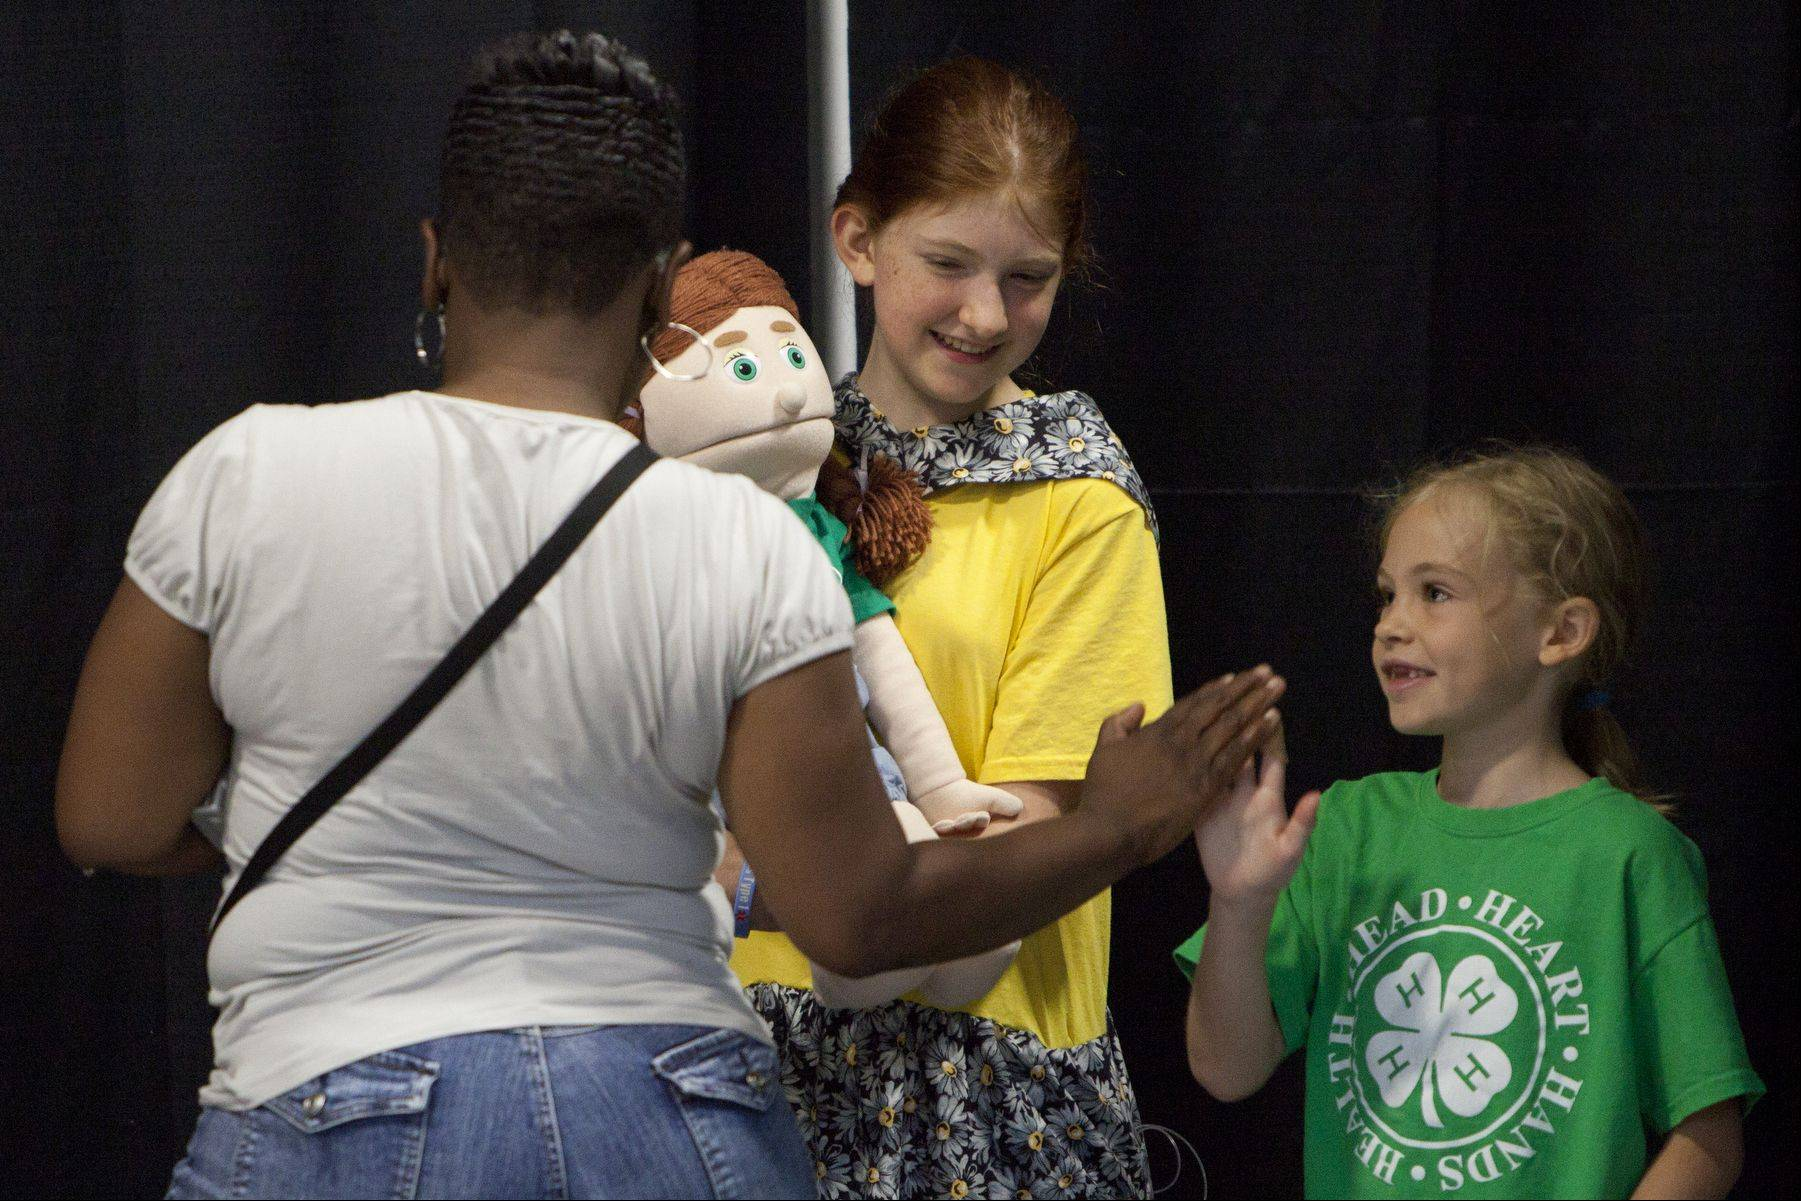 4H Community worker Sabrina Huley gives Clover Buddy Elena Hevrdejs, 8, of Lake Villa a high-five and Kit Brennes after participating in the 4H fashion show at the Lake County Fair on Saturday